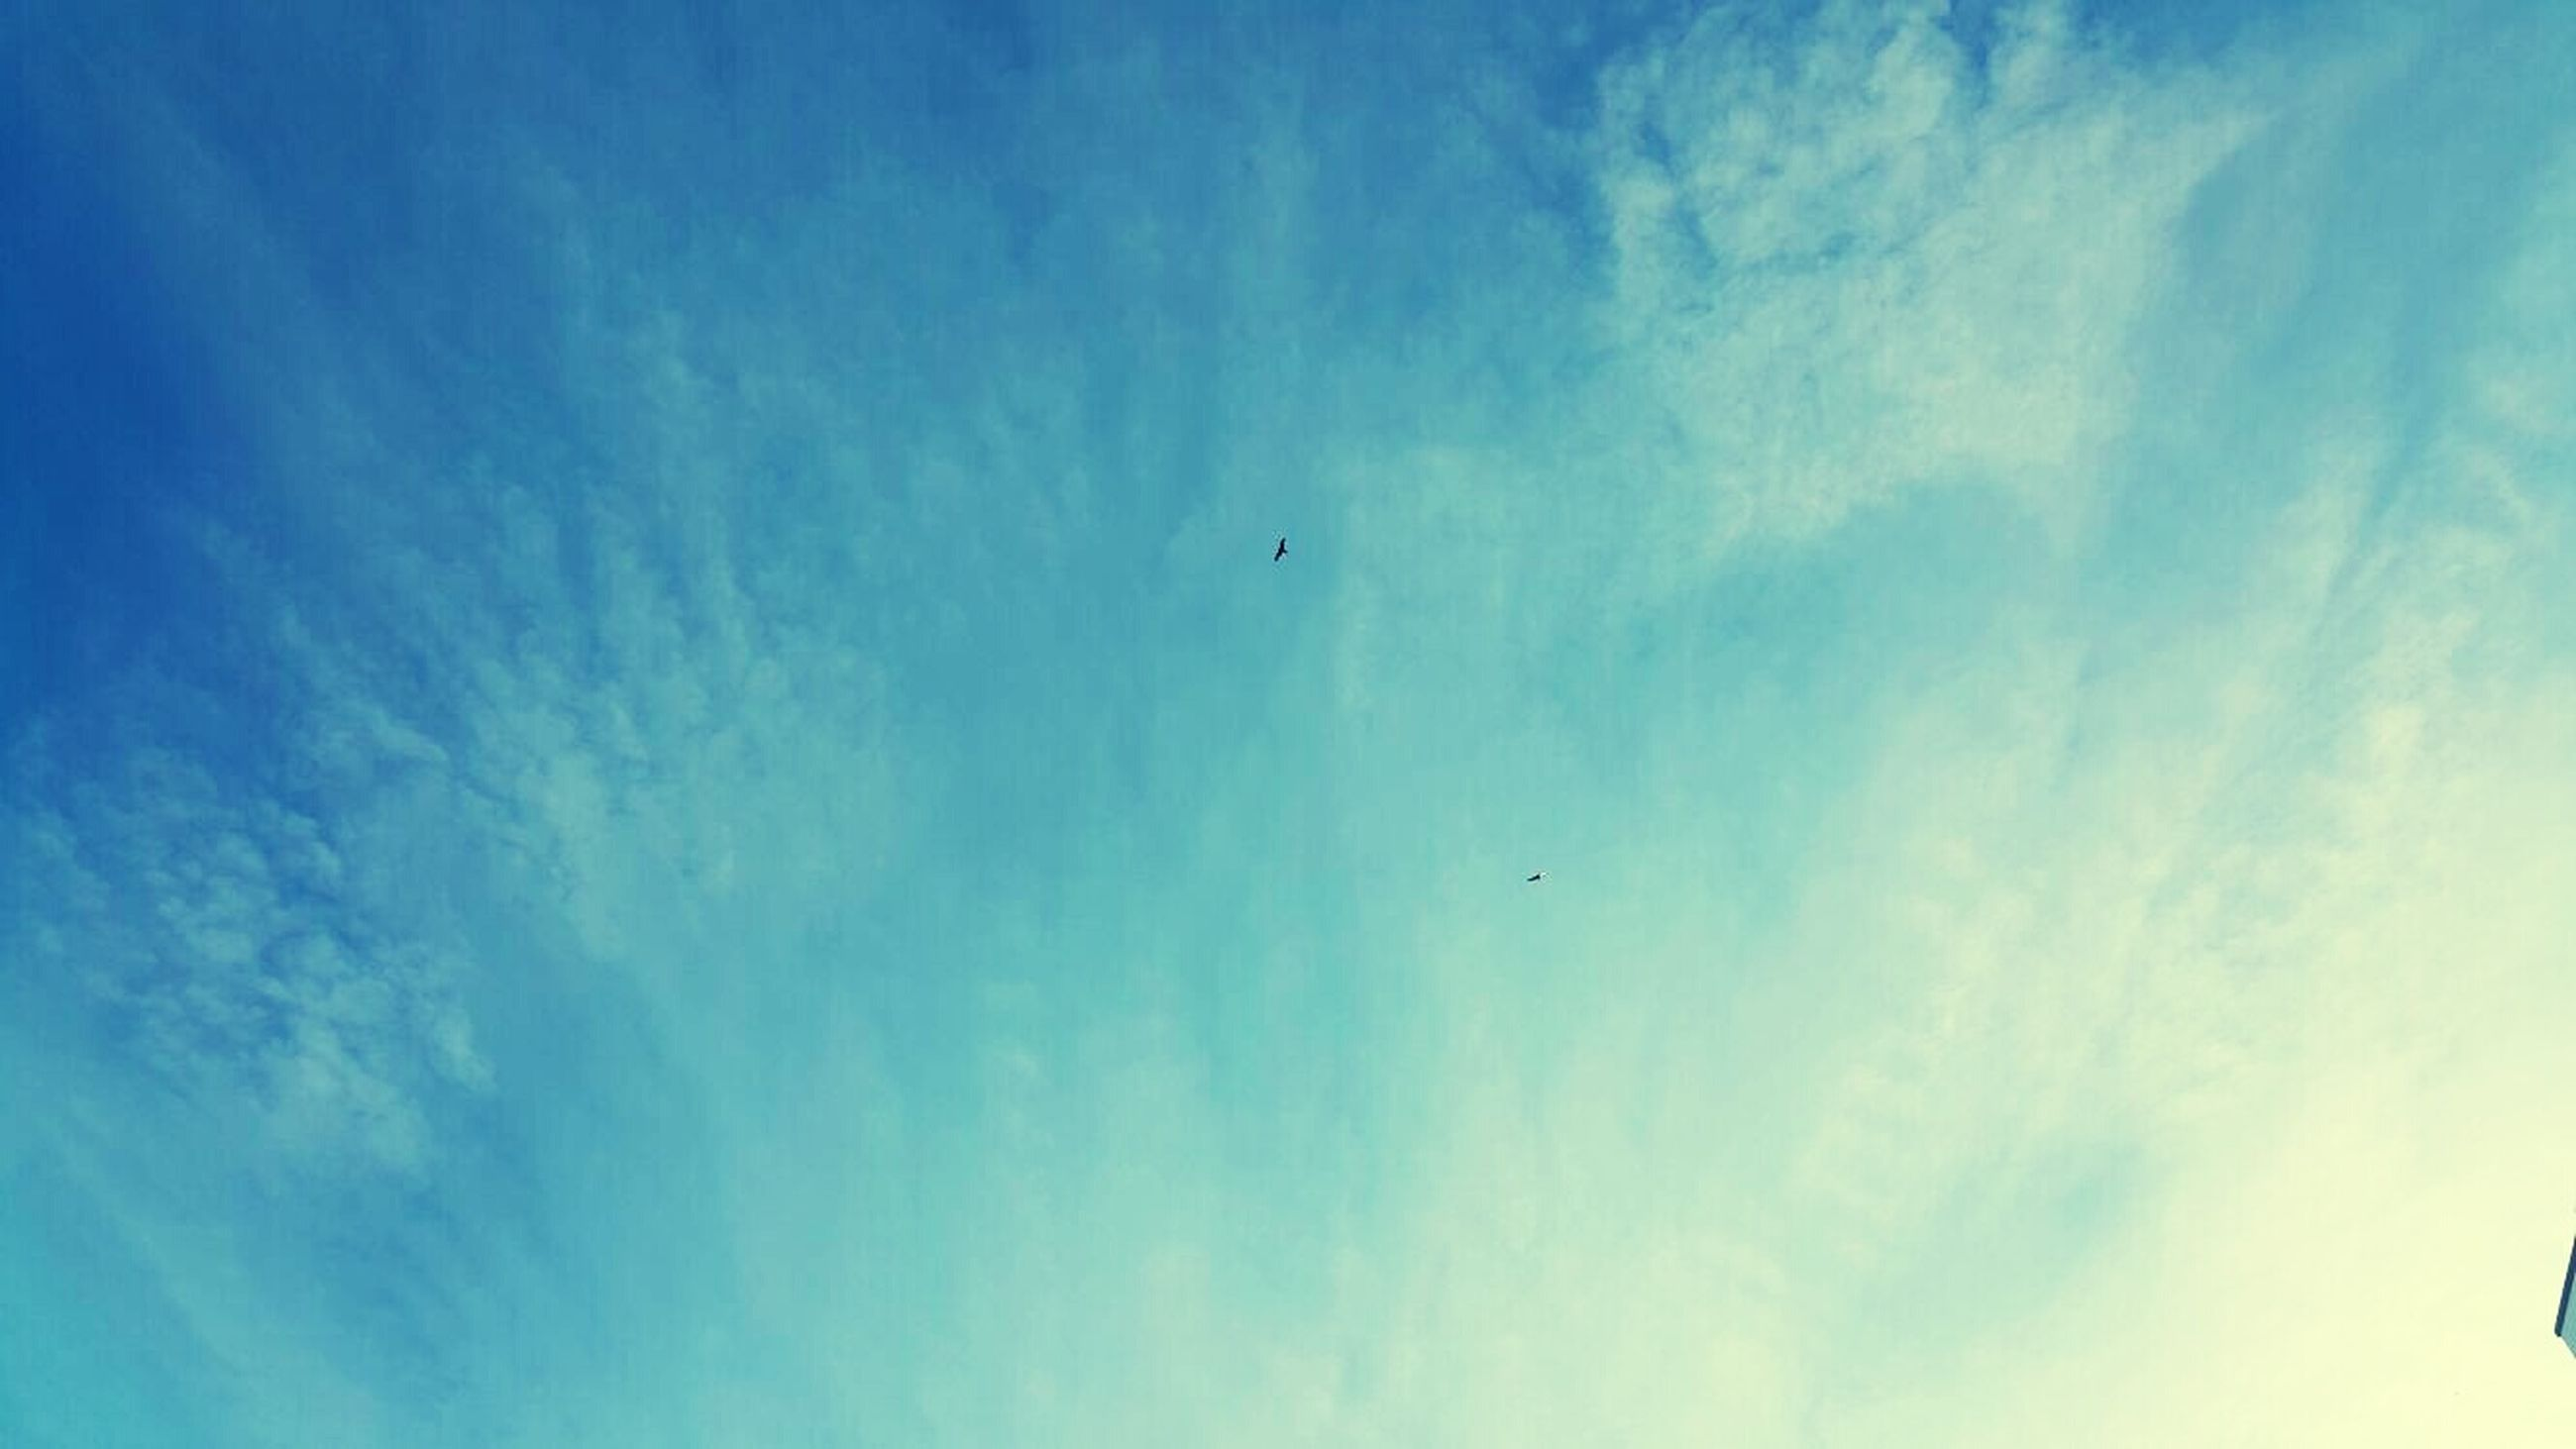 low angle view, flying, sky, cloud - sky, blue, animal themes, bird, mid-air, beauty in nature, nature, wildlife, tranquility, animals in the wild, cloud, scenics, cloudy, tranquil scene, outdoors, no people, day